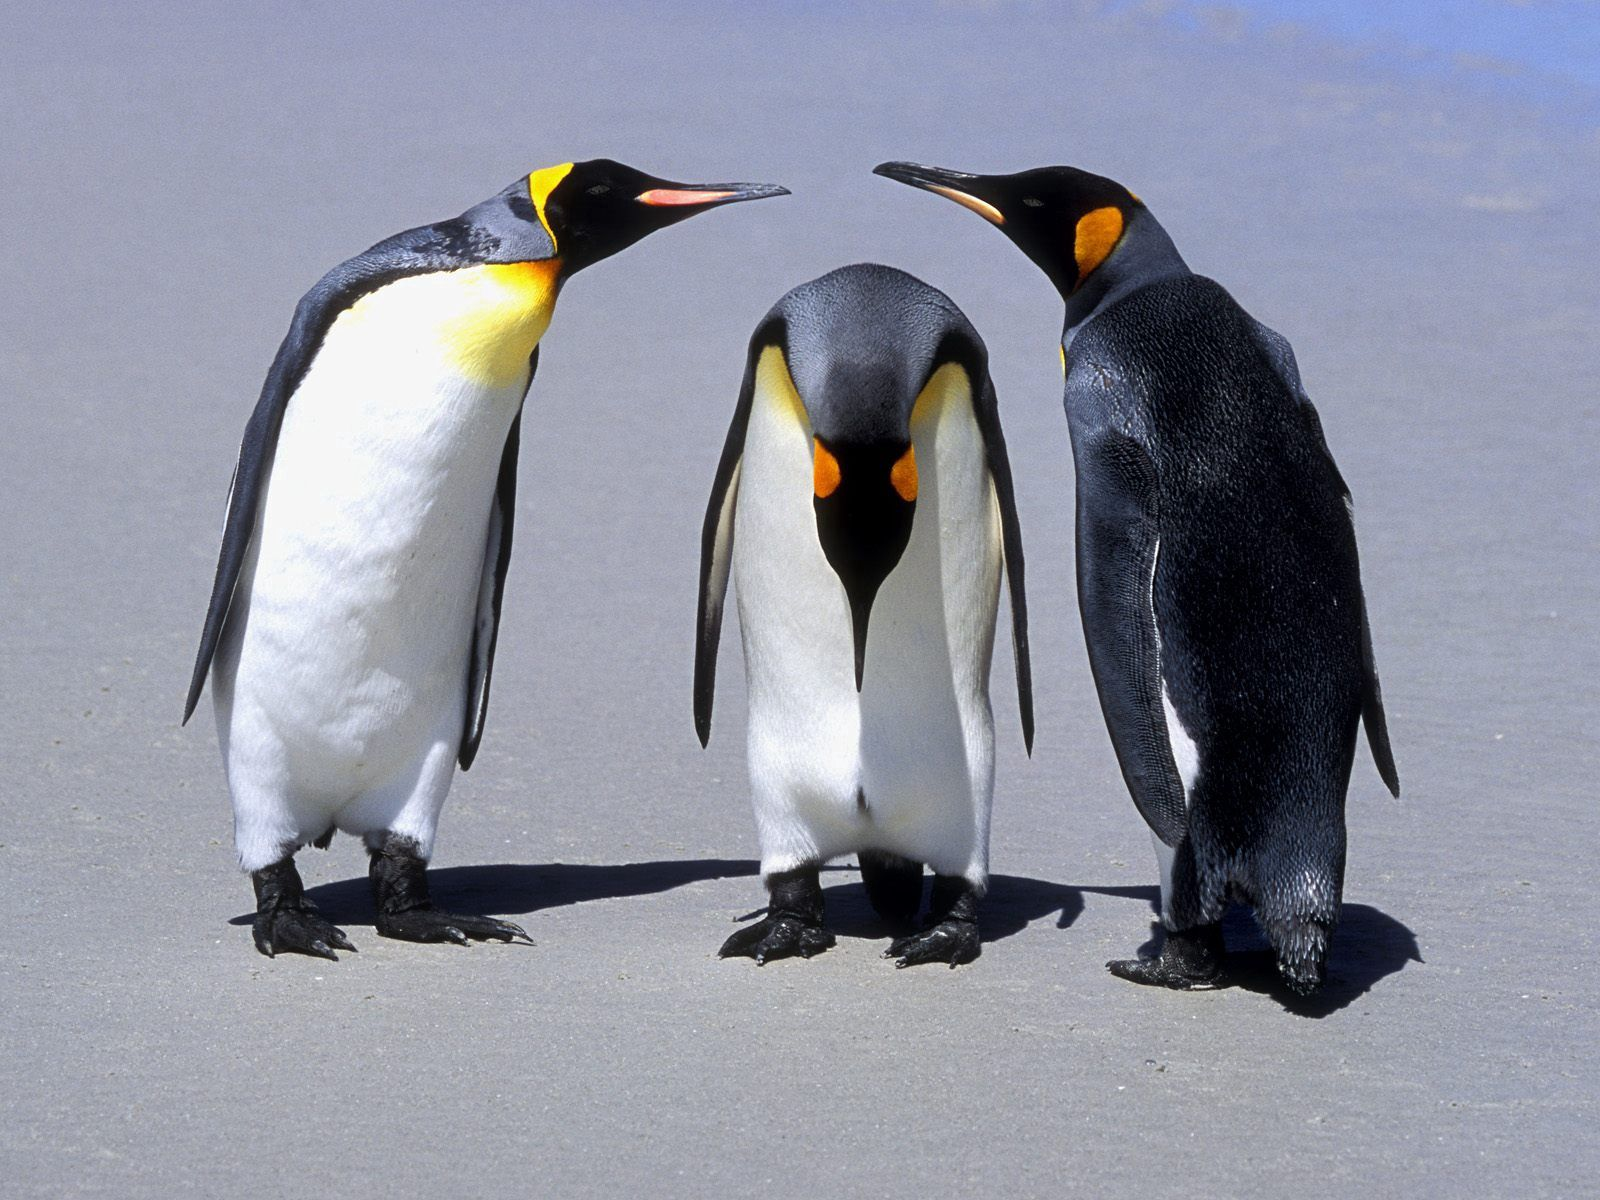 113543 download wallpaper Animals, Pinguins, Shadow, Three, Communication screensavers and pictures for free